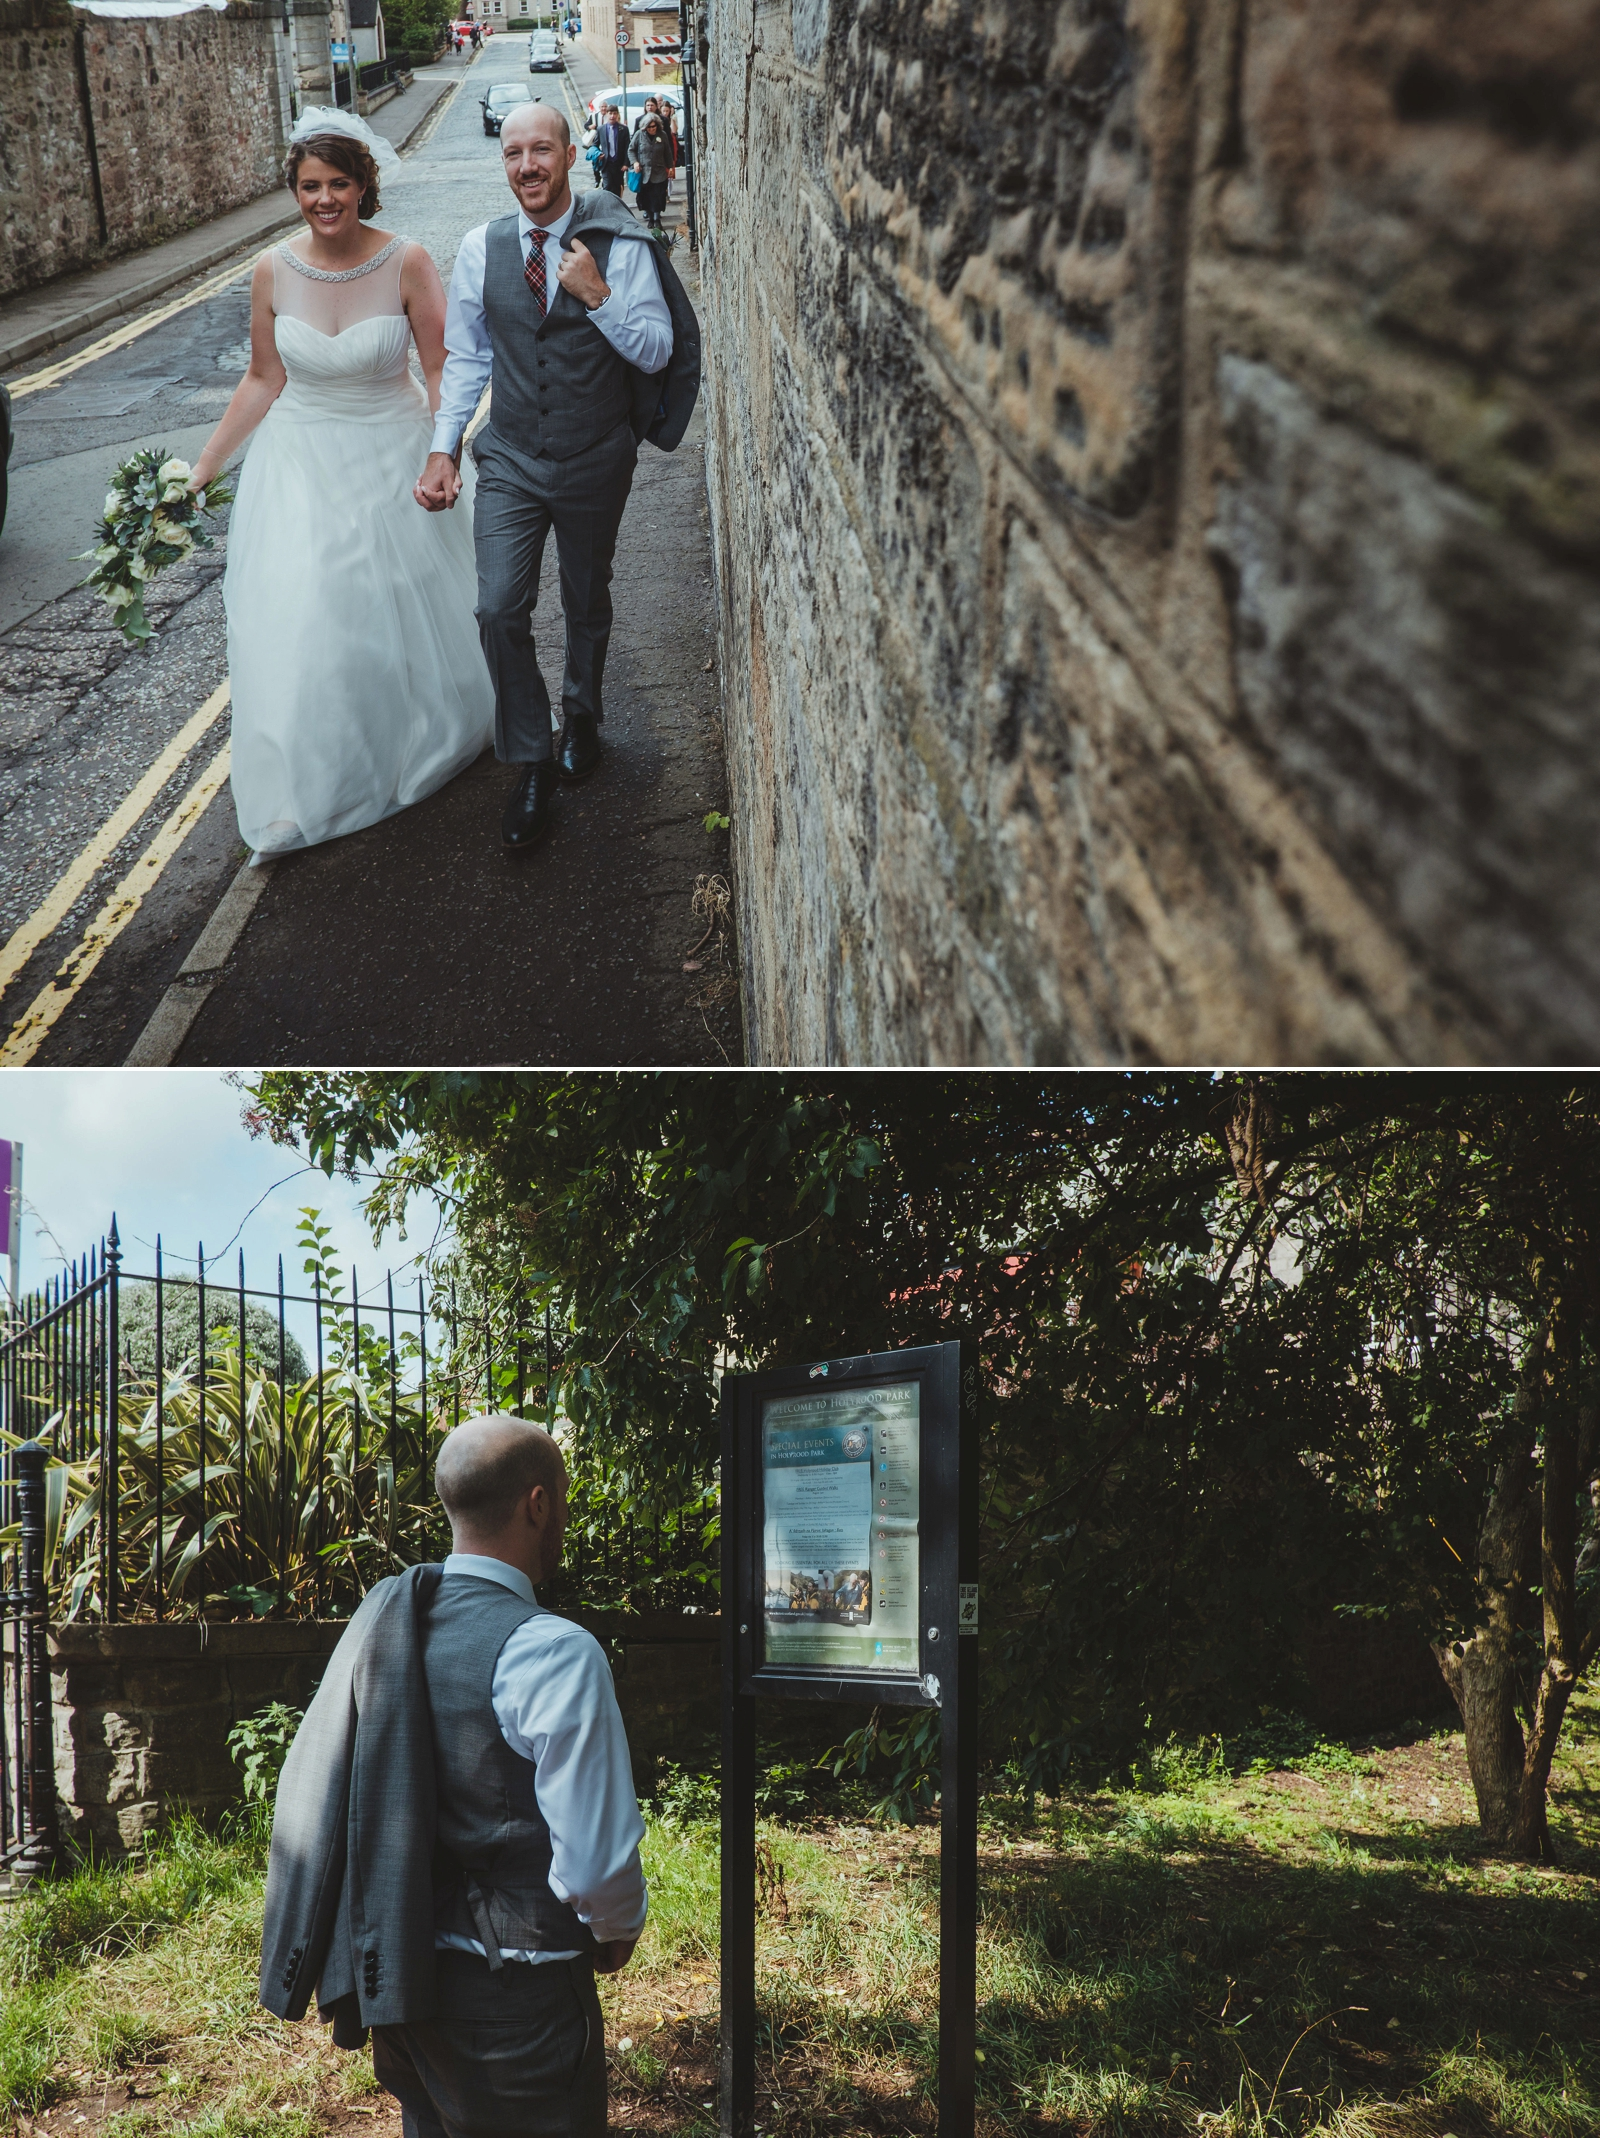 Angela___Andy_s_Edinburgh_elopement_by_Barry_Forshaw_0236.jpg